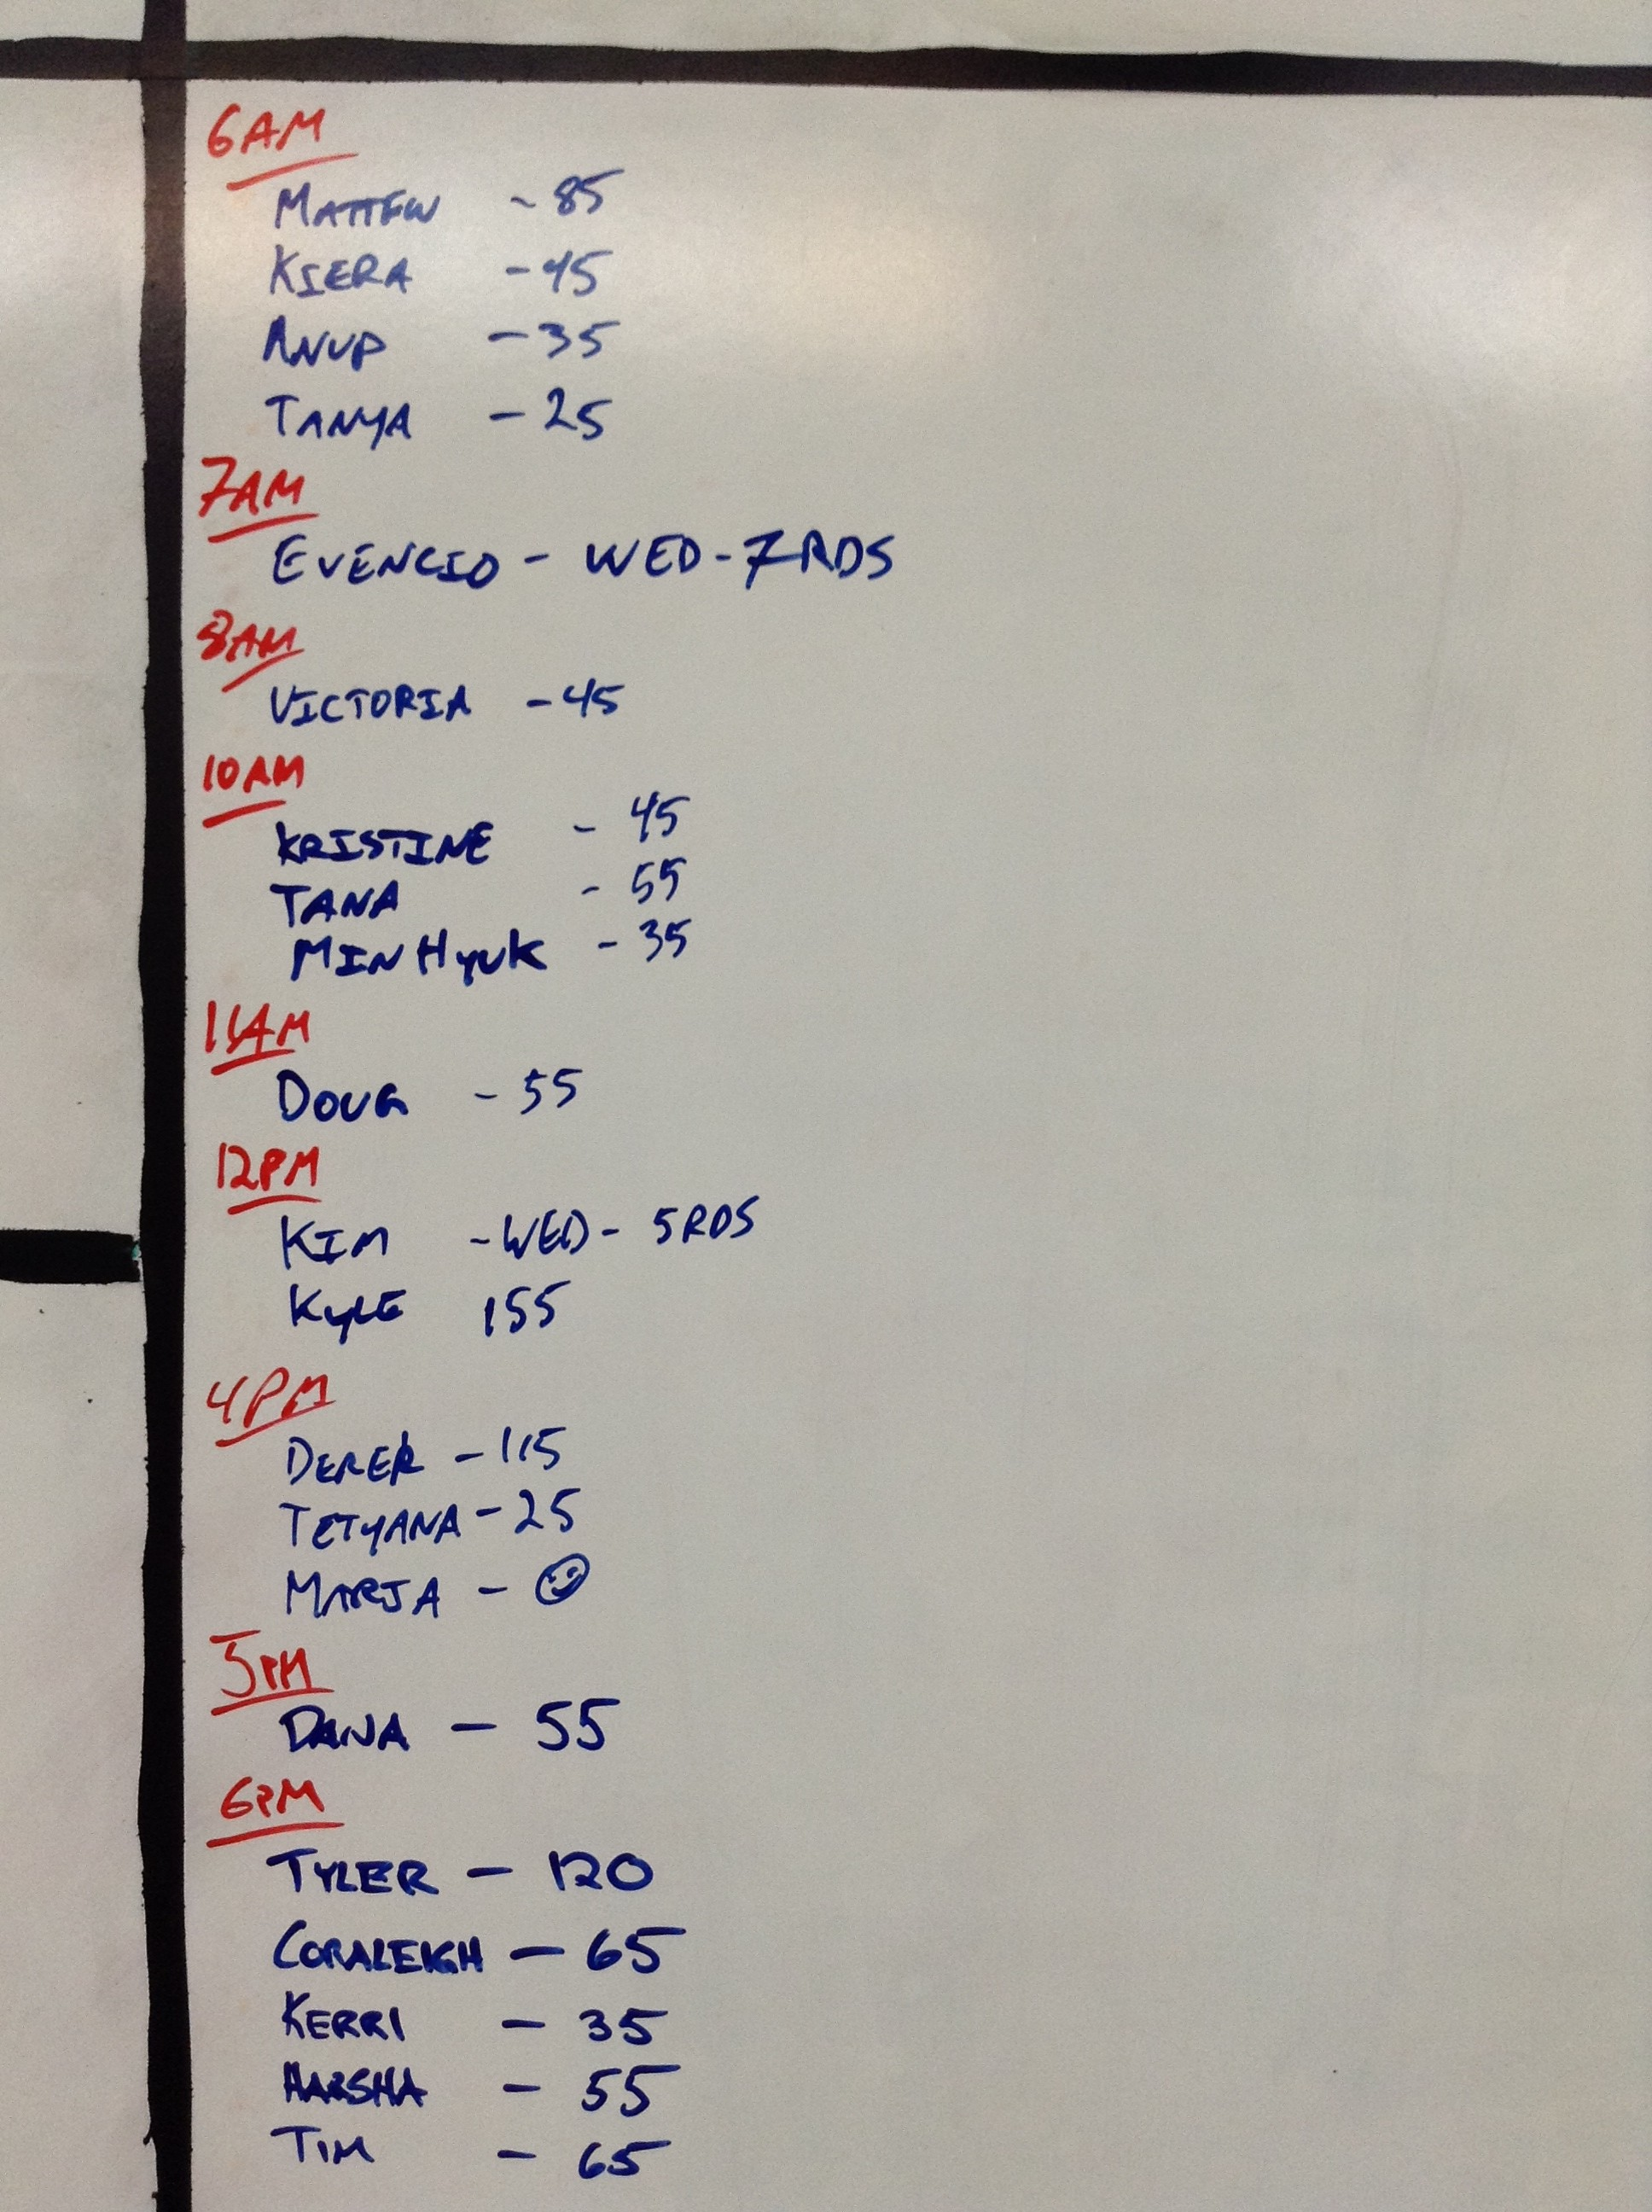 Aug 7 WOD Results